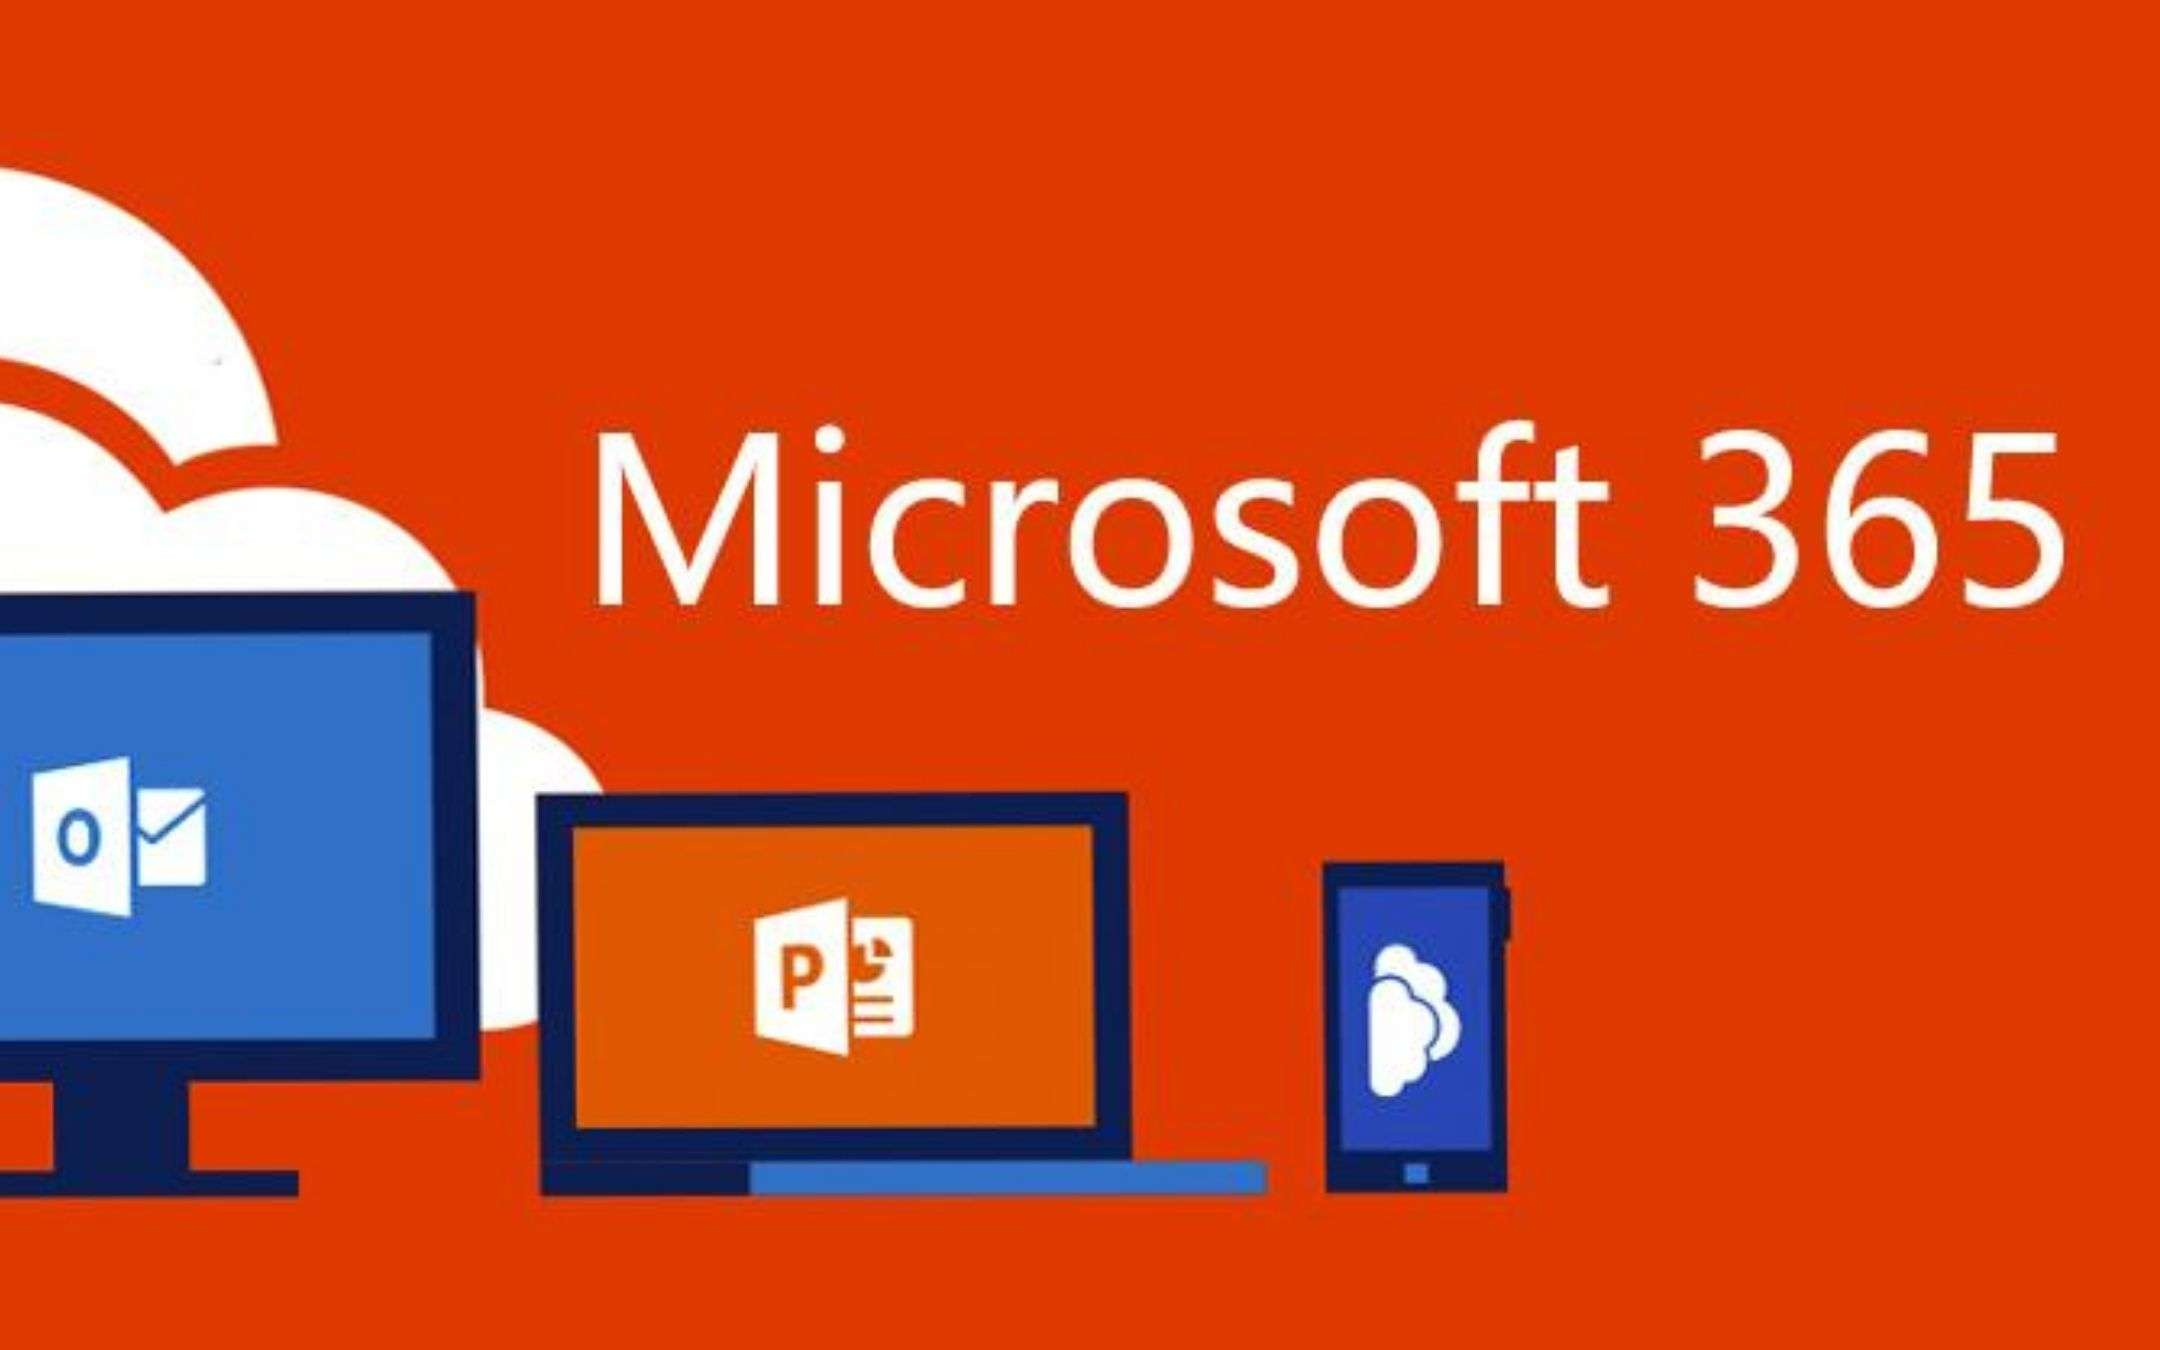 Microsoft 365 Personal: 42% discount on Unieuro